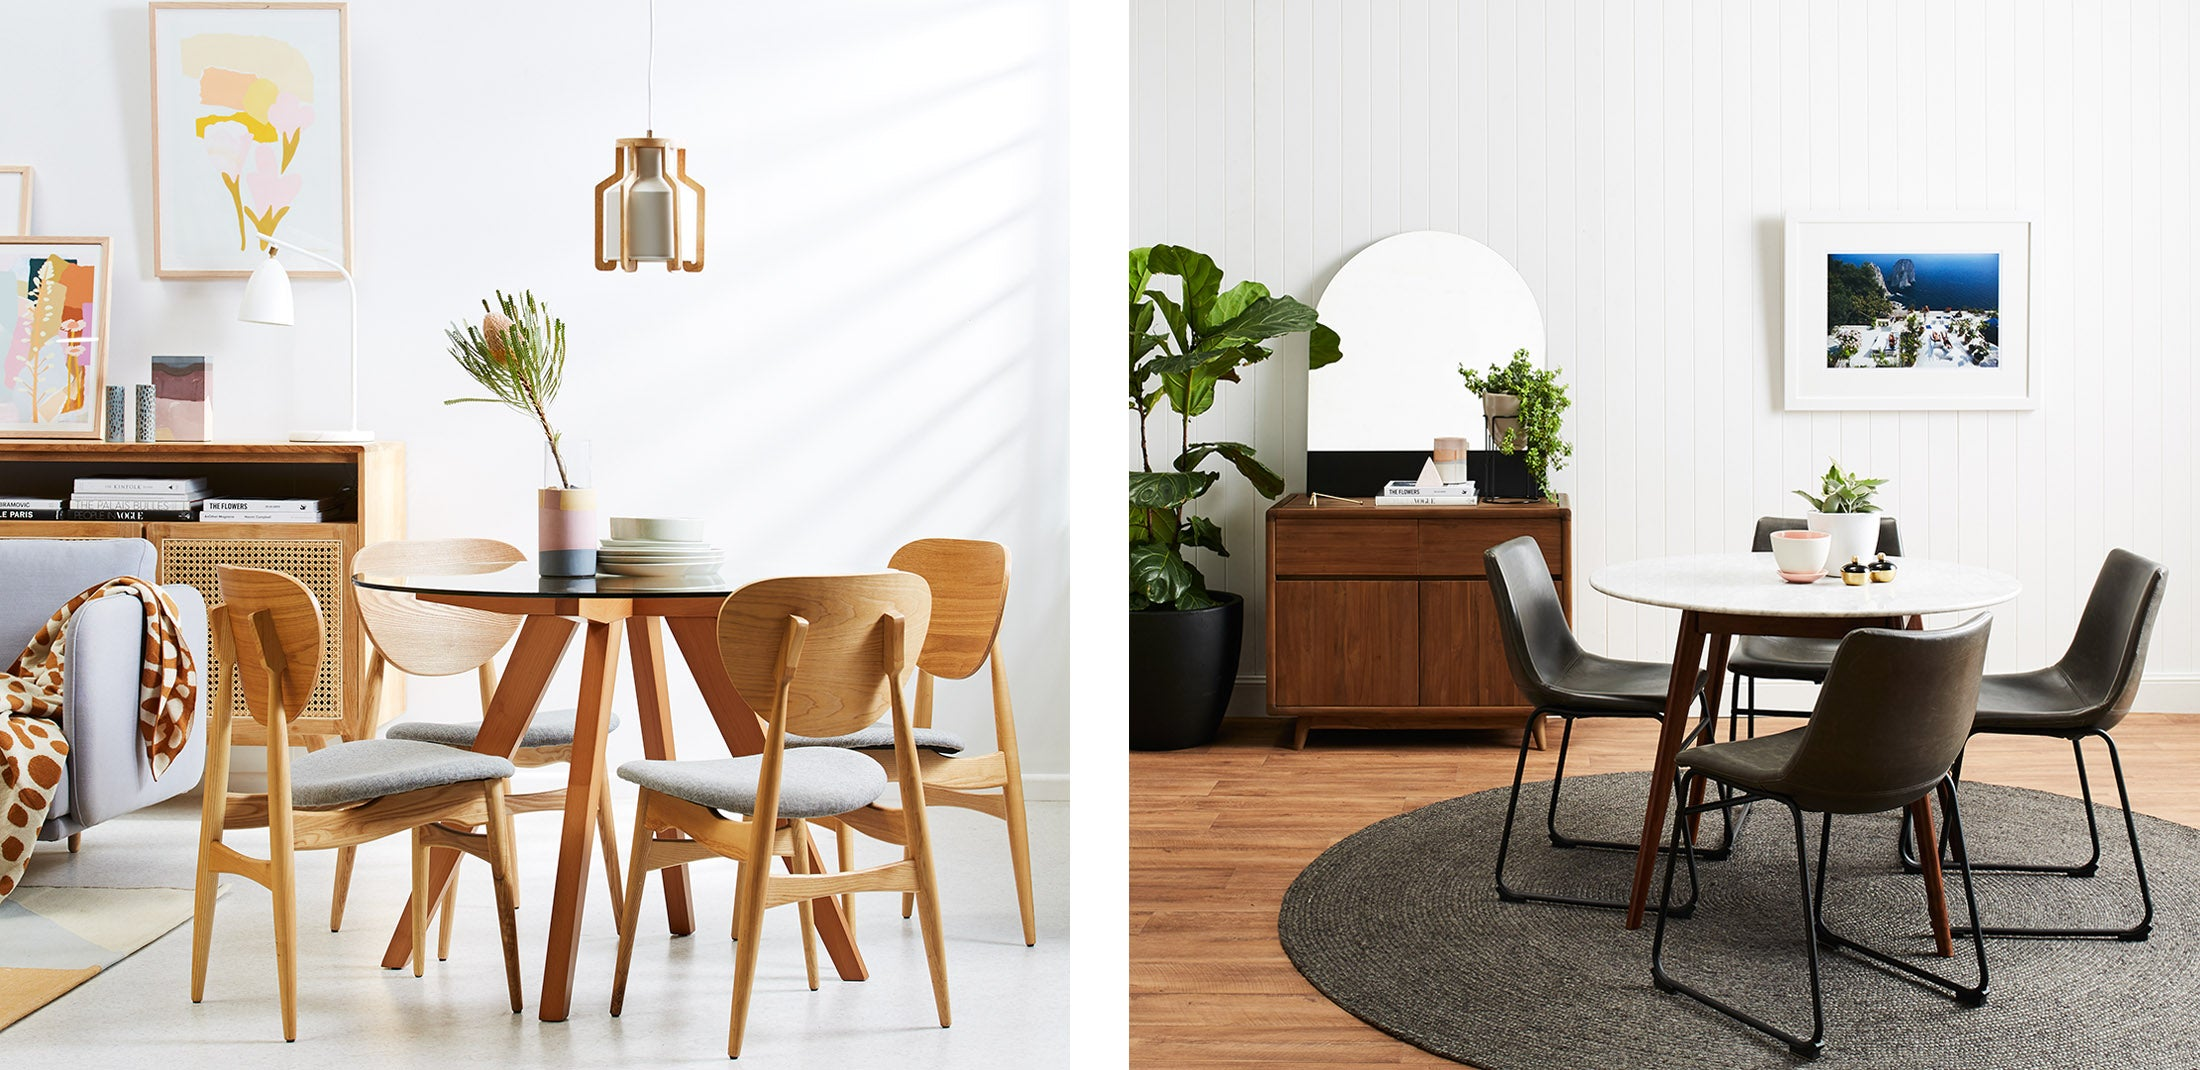 Shop the Amber and Oia Dining Tables in Sydney, Melbourne and Online.